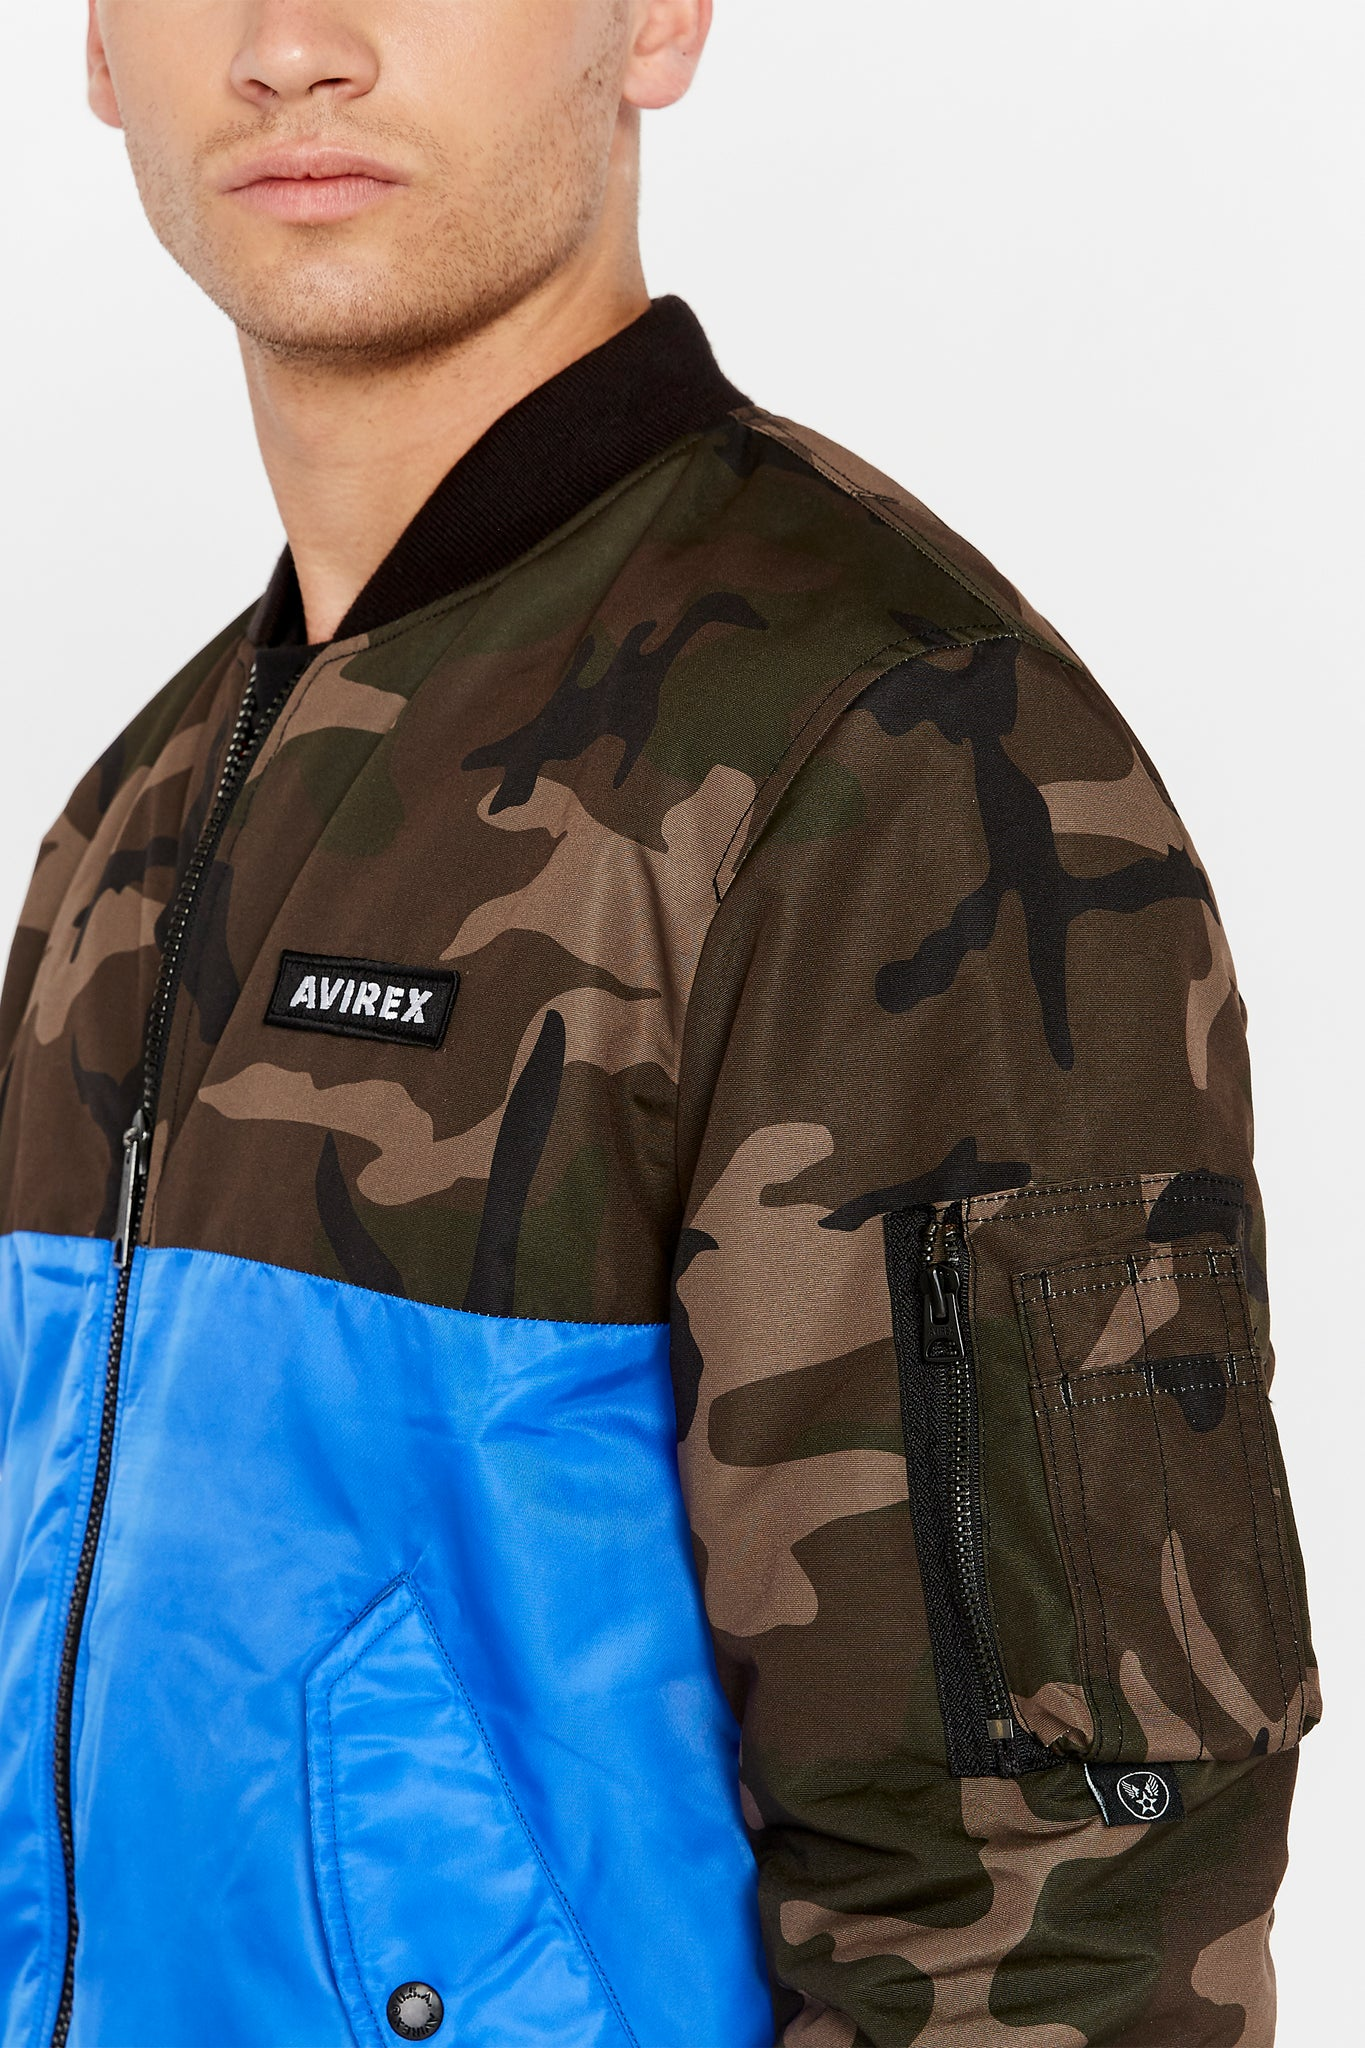 Detailed view of Avirex logo patch on the chest and one utility pocket on left sleeve